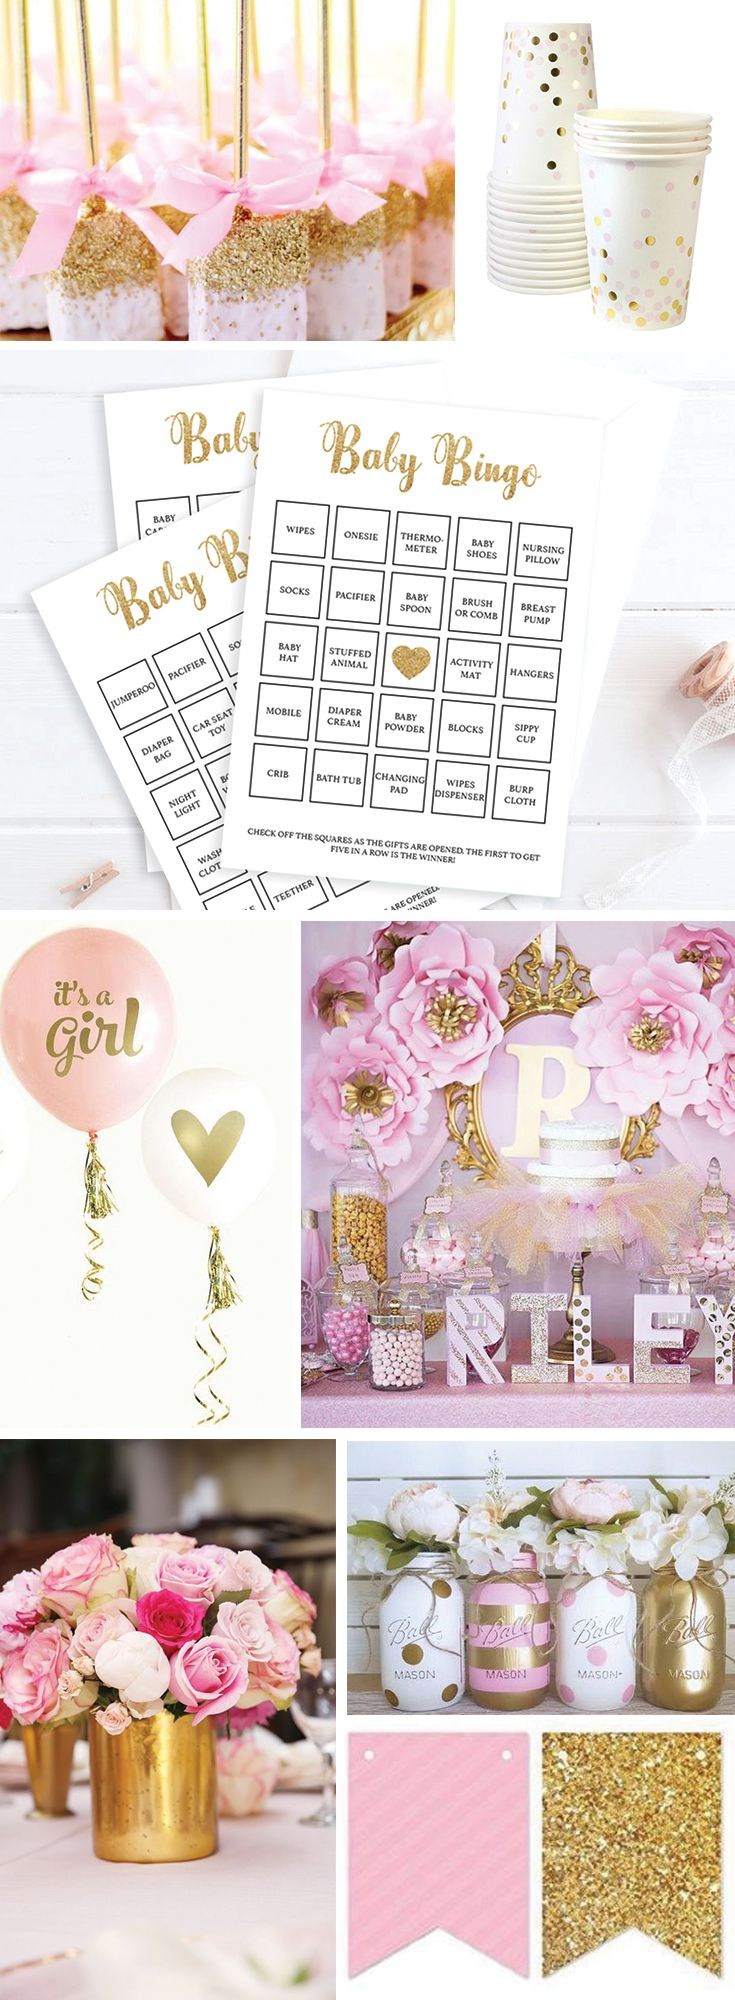 Pink and Gold Baby Shower Ideas for Girl by LittleSizzle. Baby Bingo Cards Printable Games. Let not only the mom-to-be enjoy unpacking gifts! Play Bingo with these gold glitter cards. The set has everything you need to play Baby Bingo in multiple ways. A blank card to be filled out by your guests, 30 pre-filled cards to make things easy and an editable PDF template for you to fill out with your own gift ideas or if you have more than 30 guests!